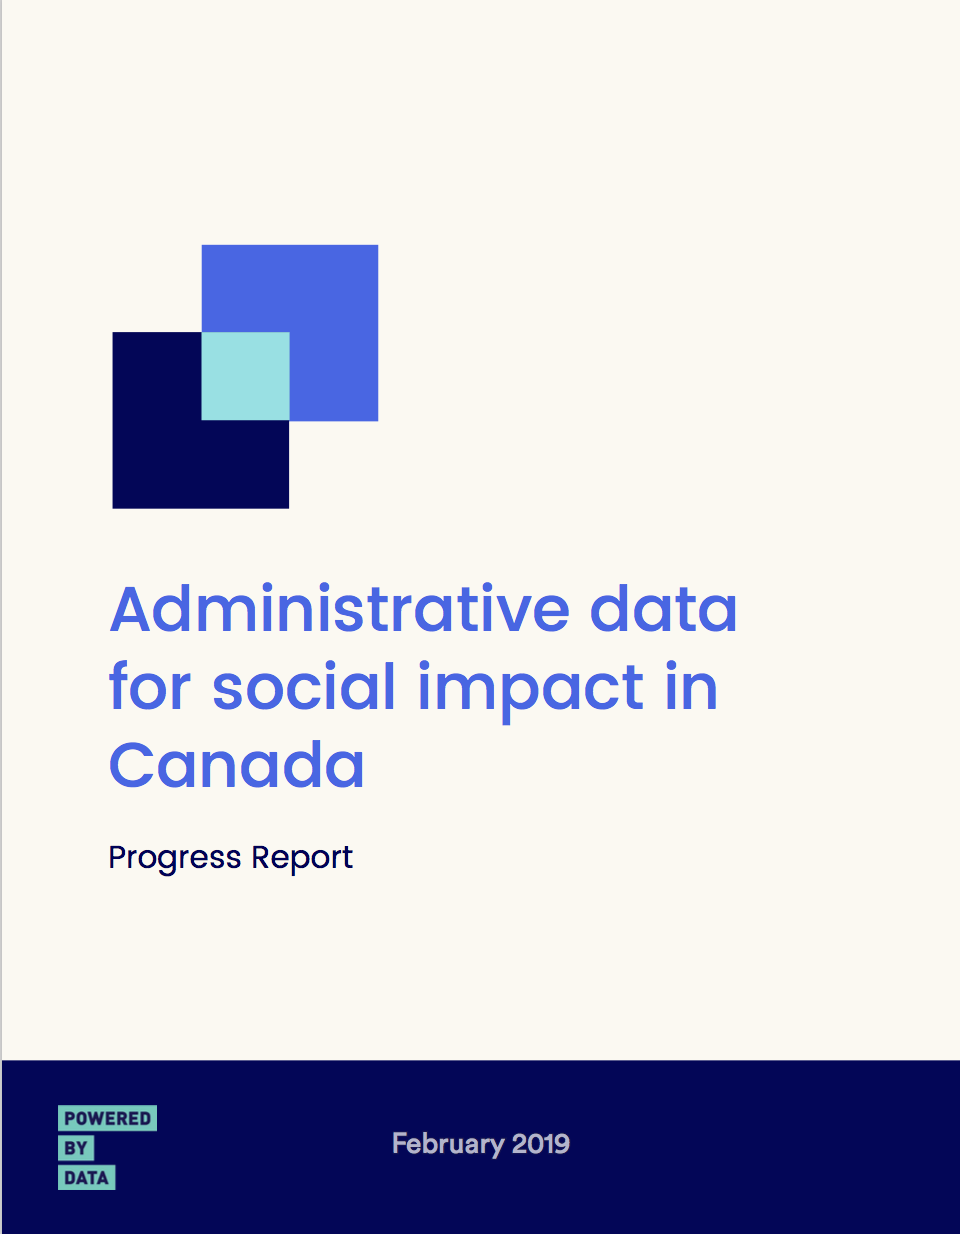 Admin Data Progress Update Cover page.png